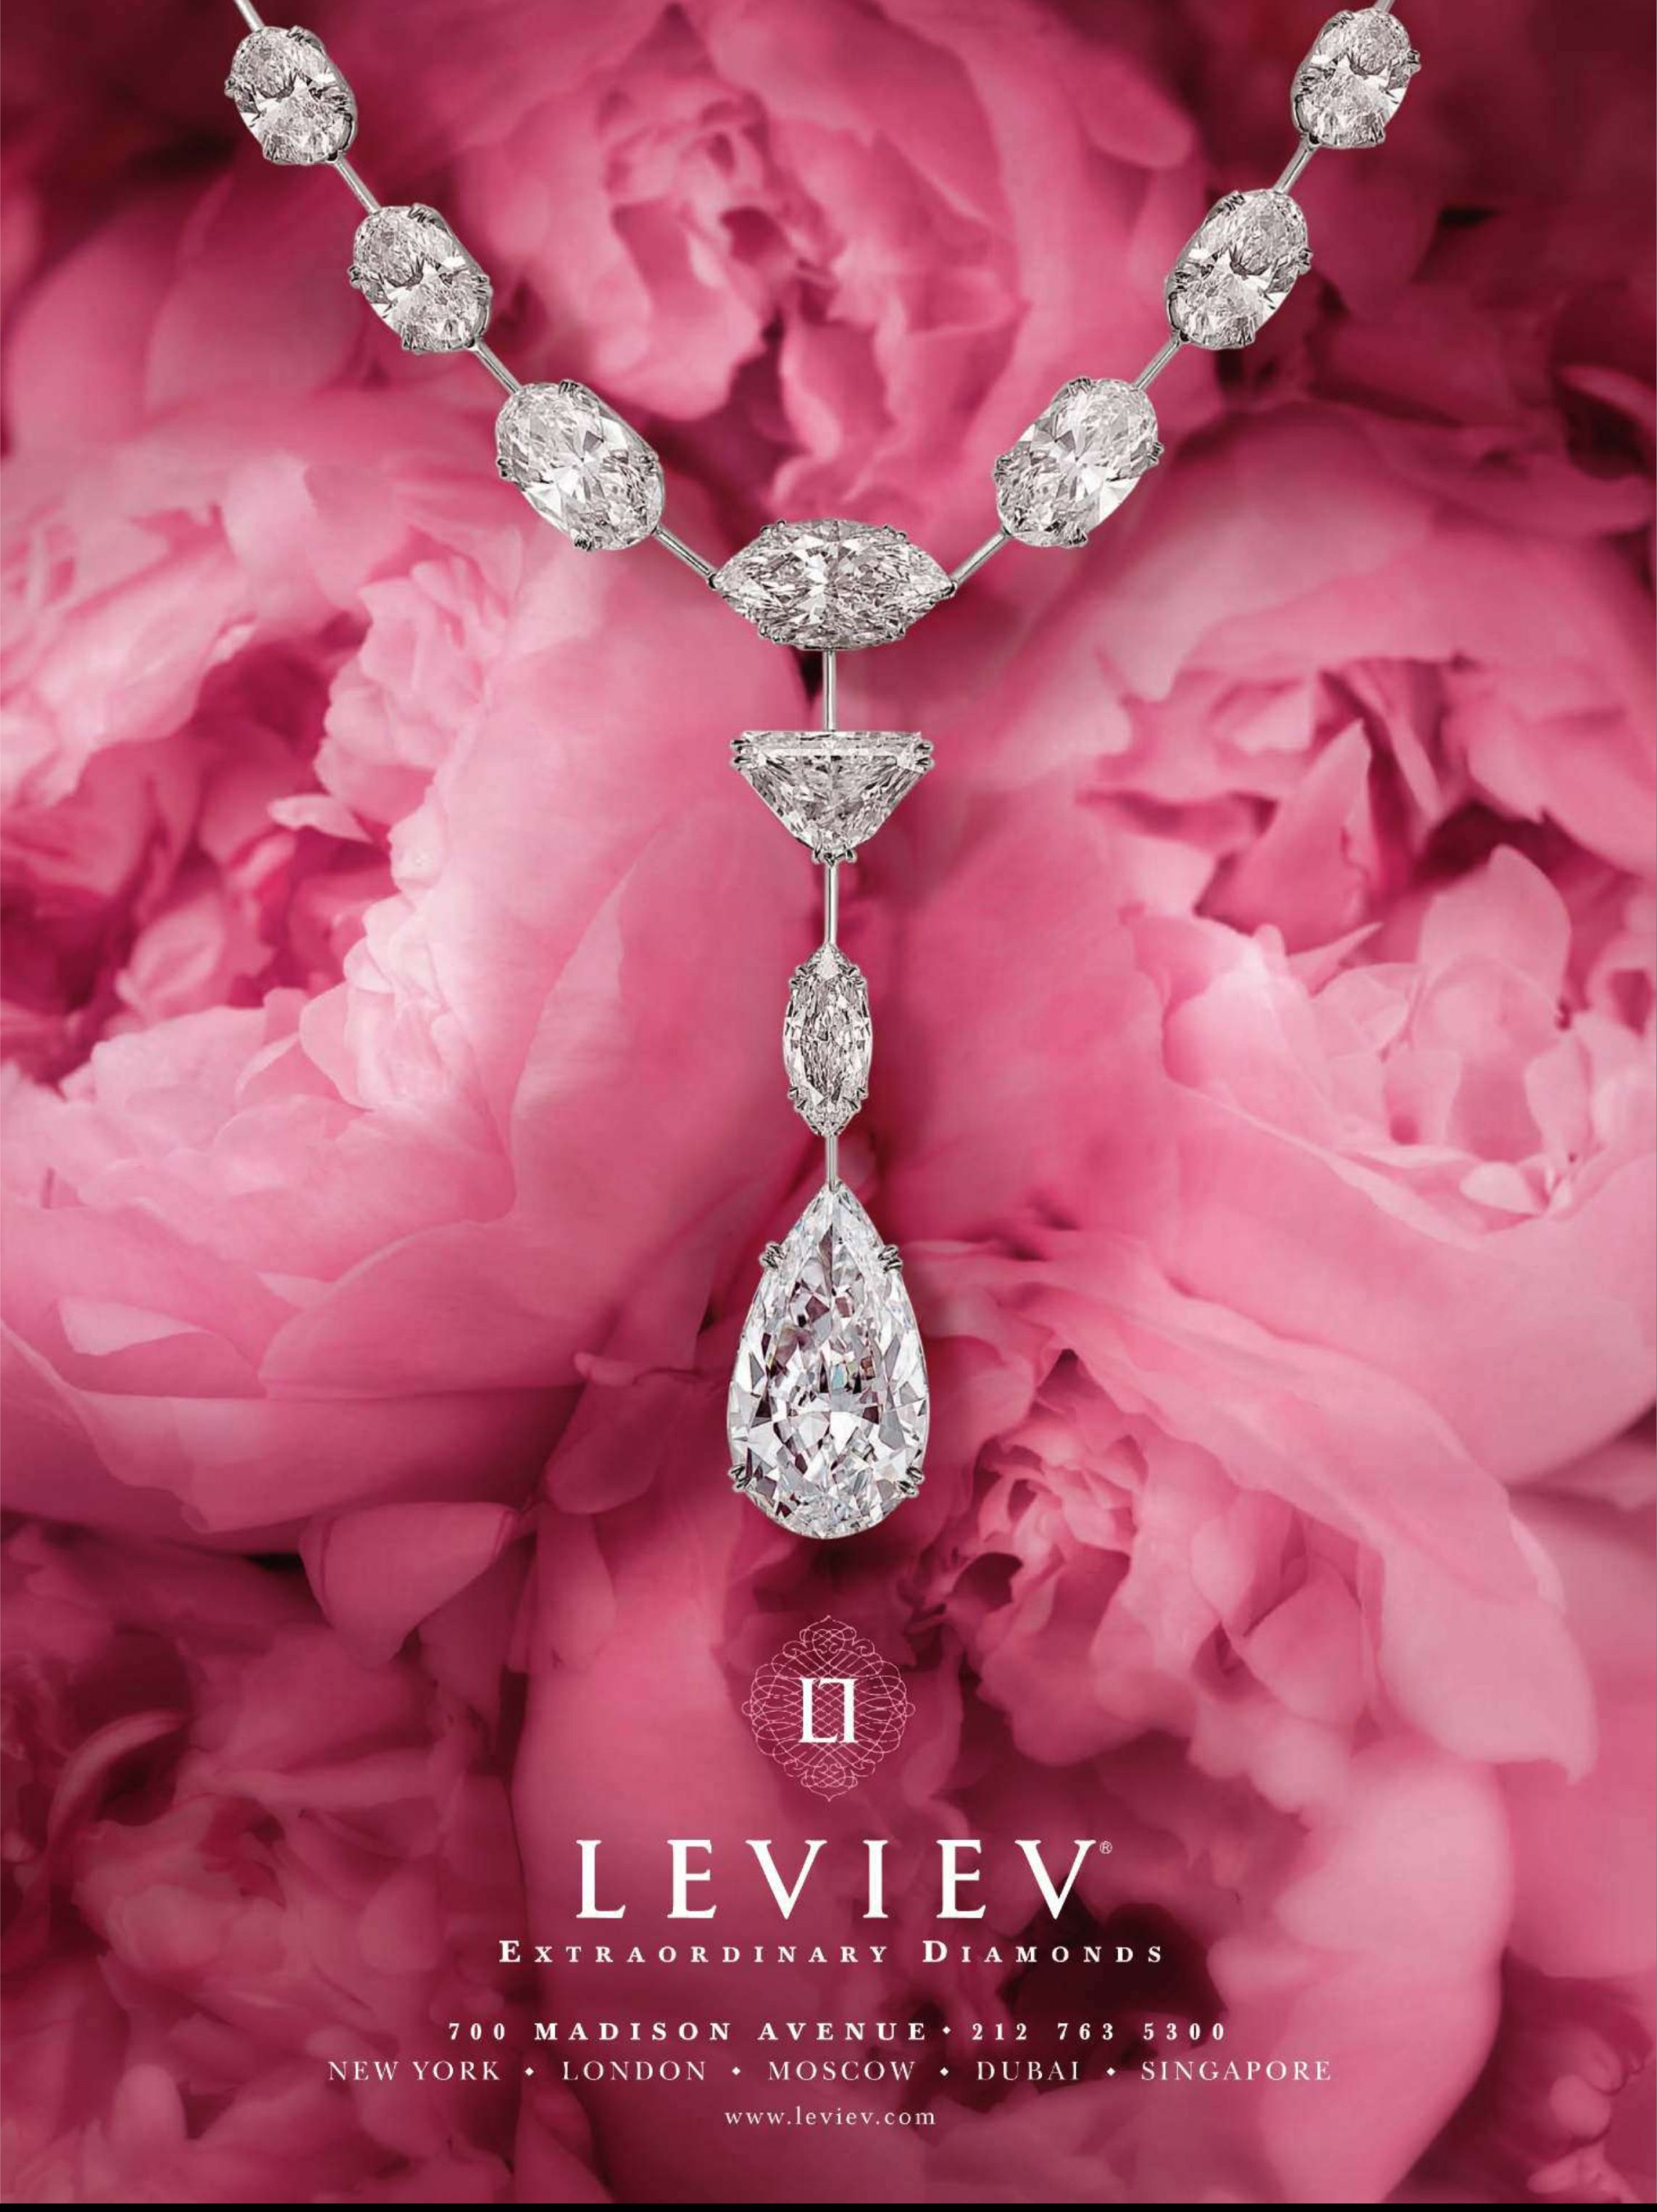 Another French exception | Leviev | Pinterest | Diamond, Blood and Diva